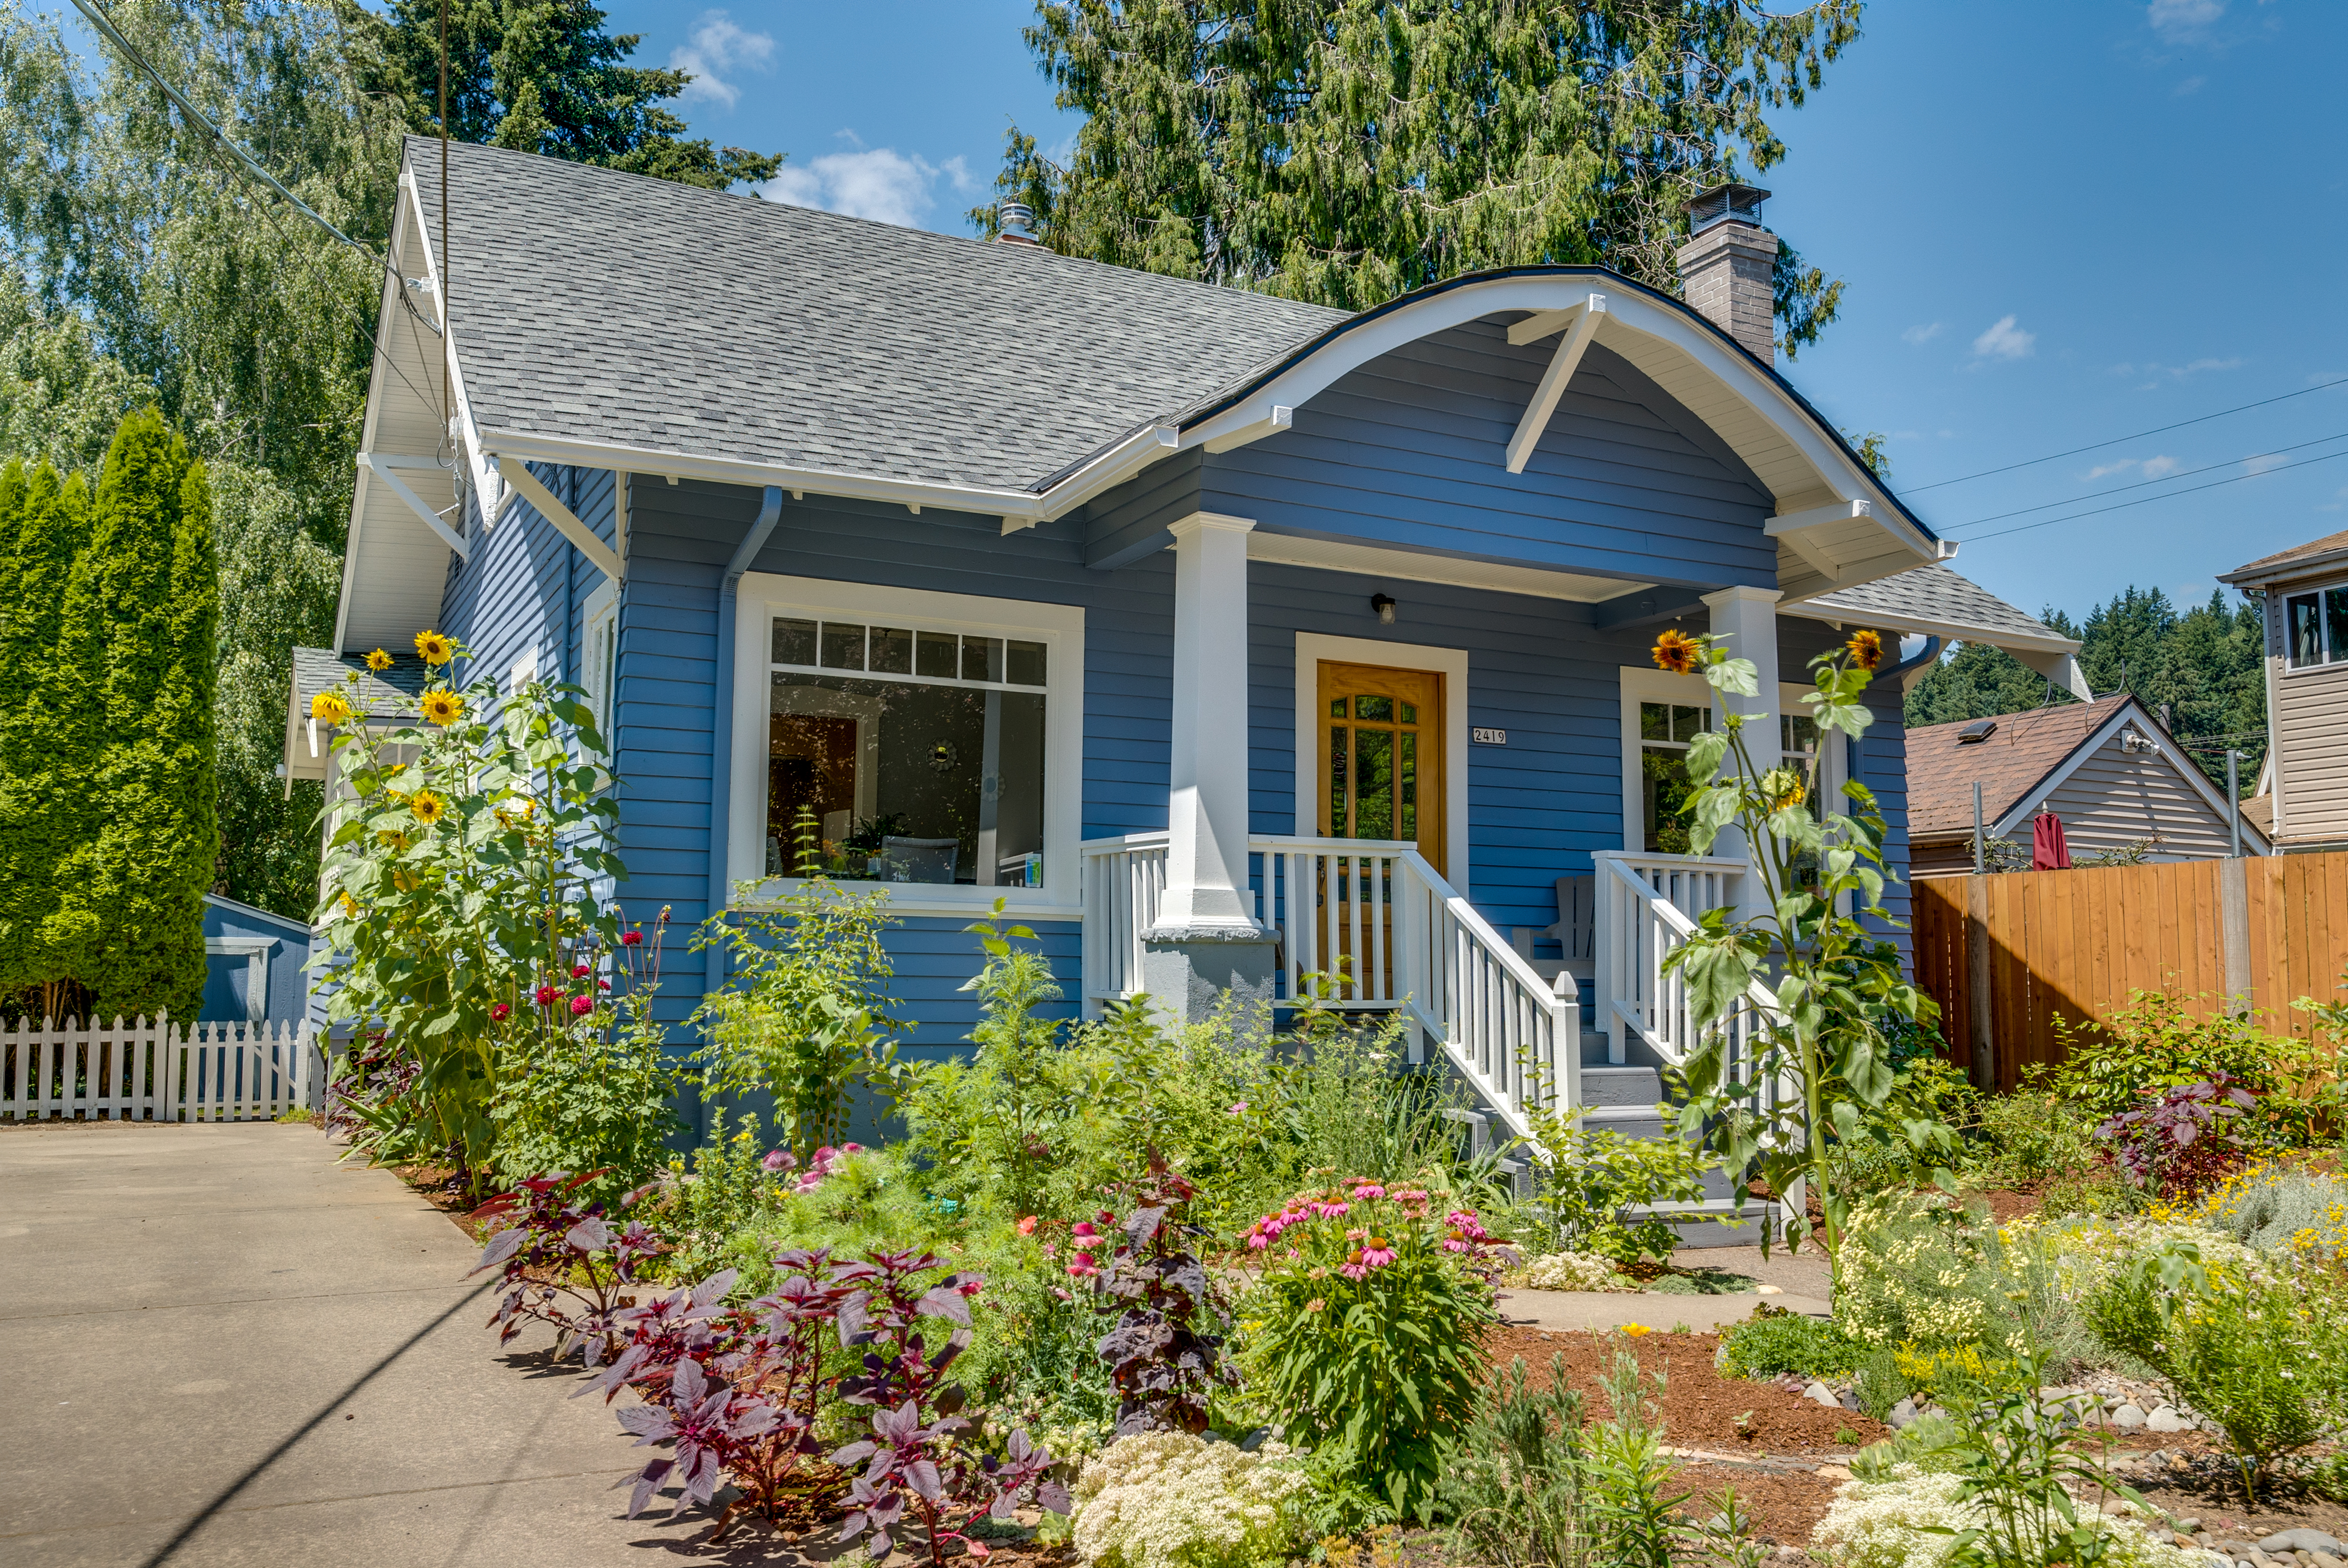 Gardener's dream with giant back yard. So close to Tabor! OPEN SAT & SUN July 7 and 8